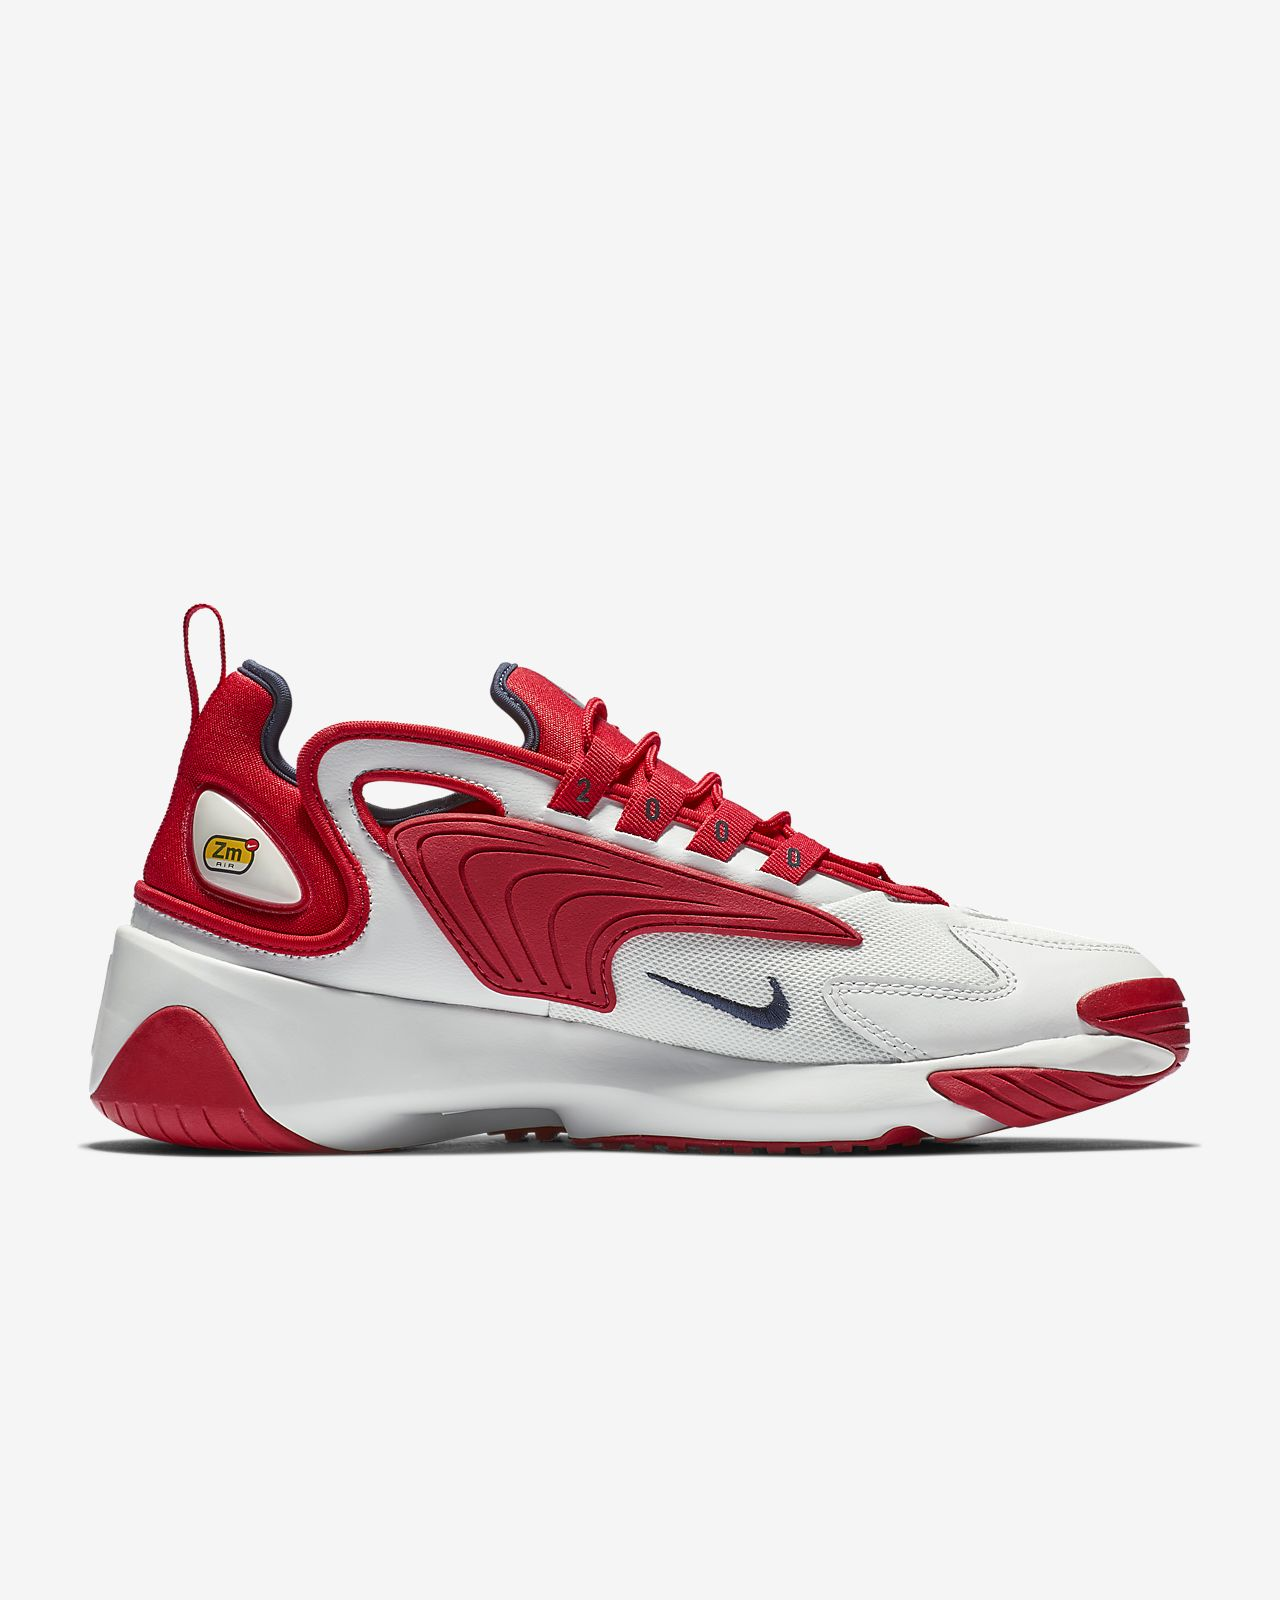 cheaper 806e4 204f0 ... Chaussure Nike Zoom 2K pour Homme